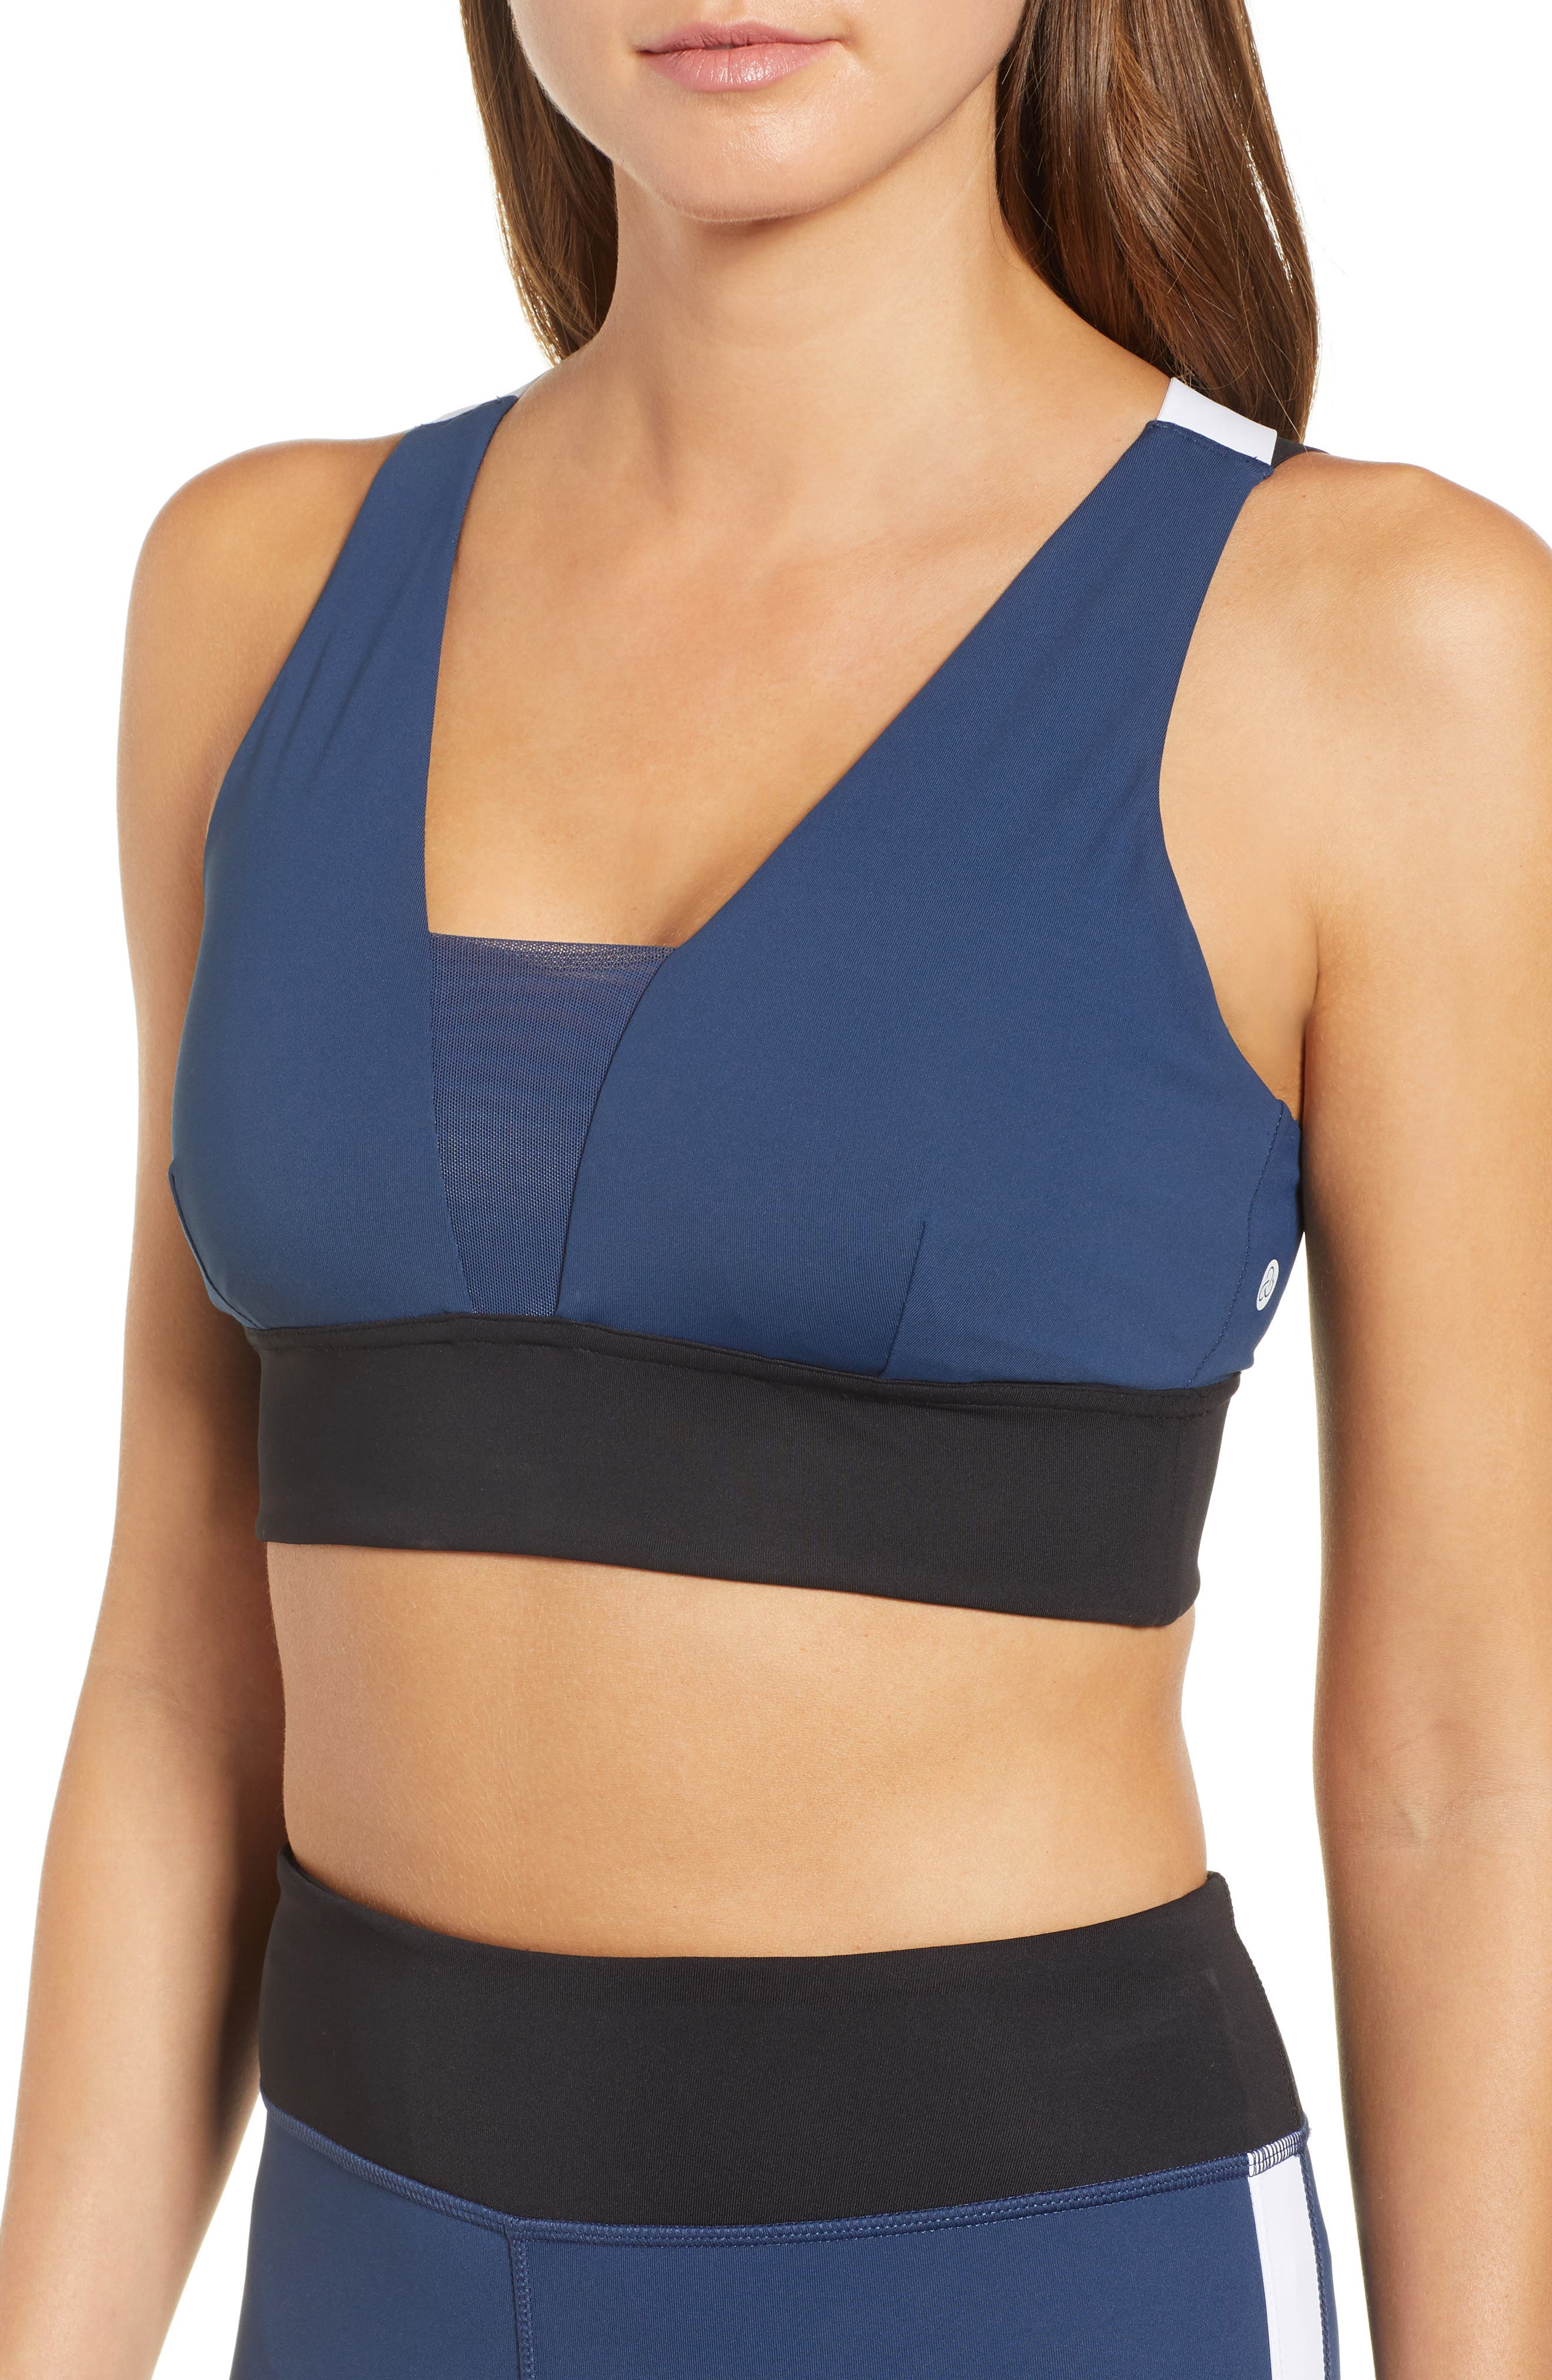 Marilyn Sports Bra,                         Main,                         color, 401